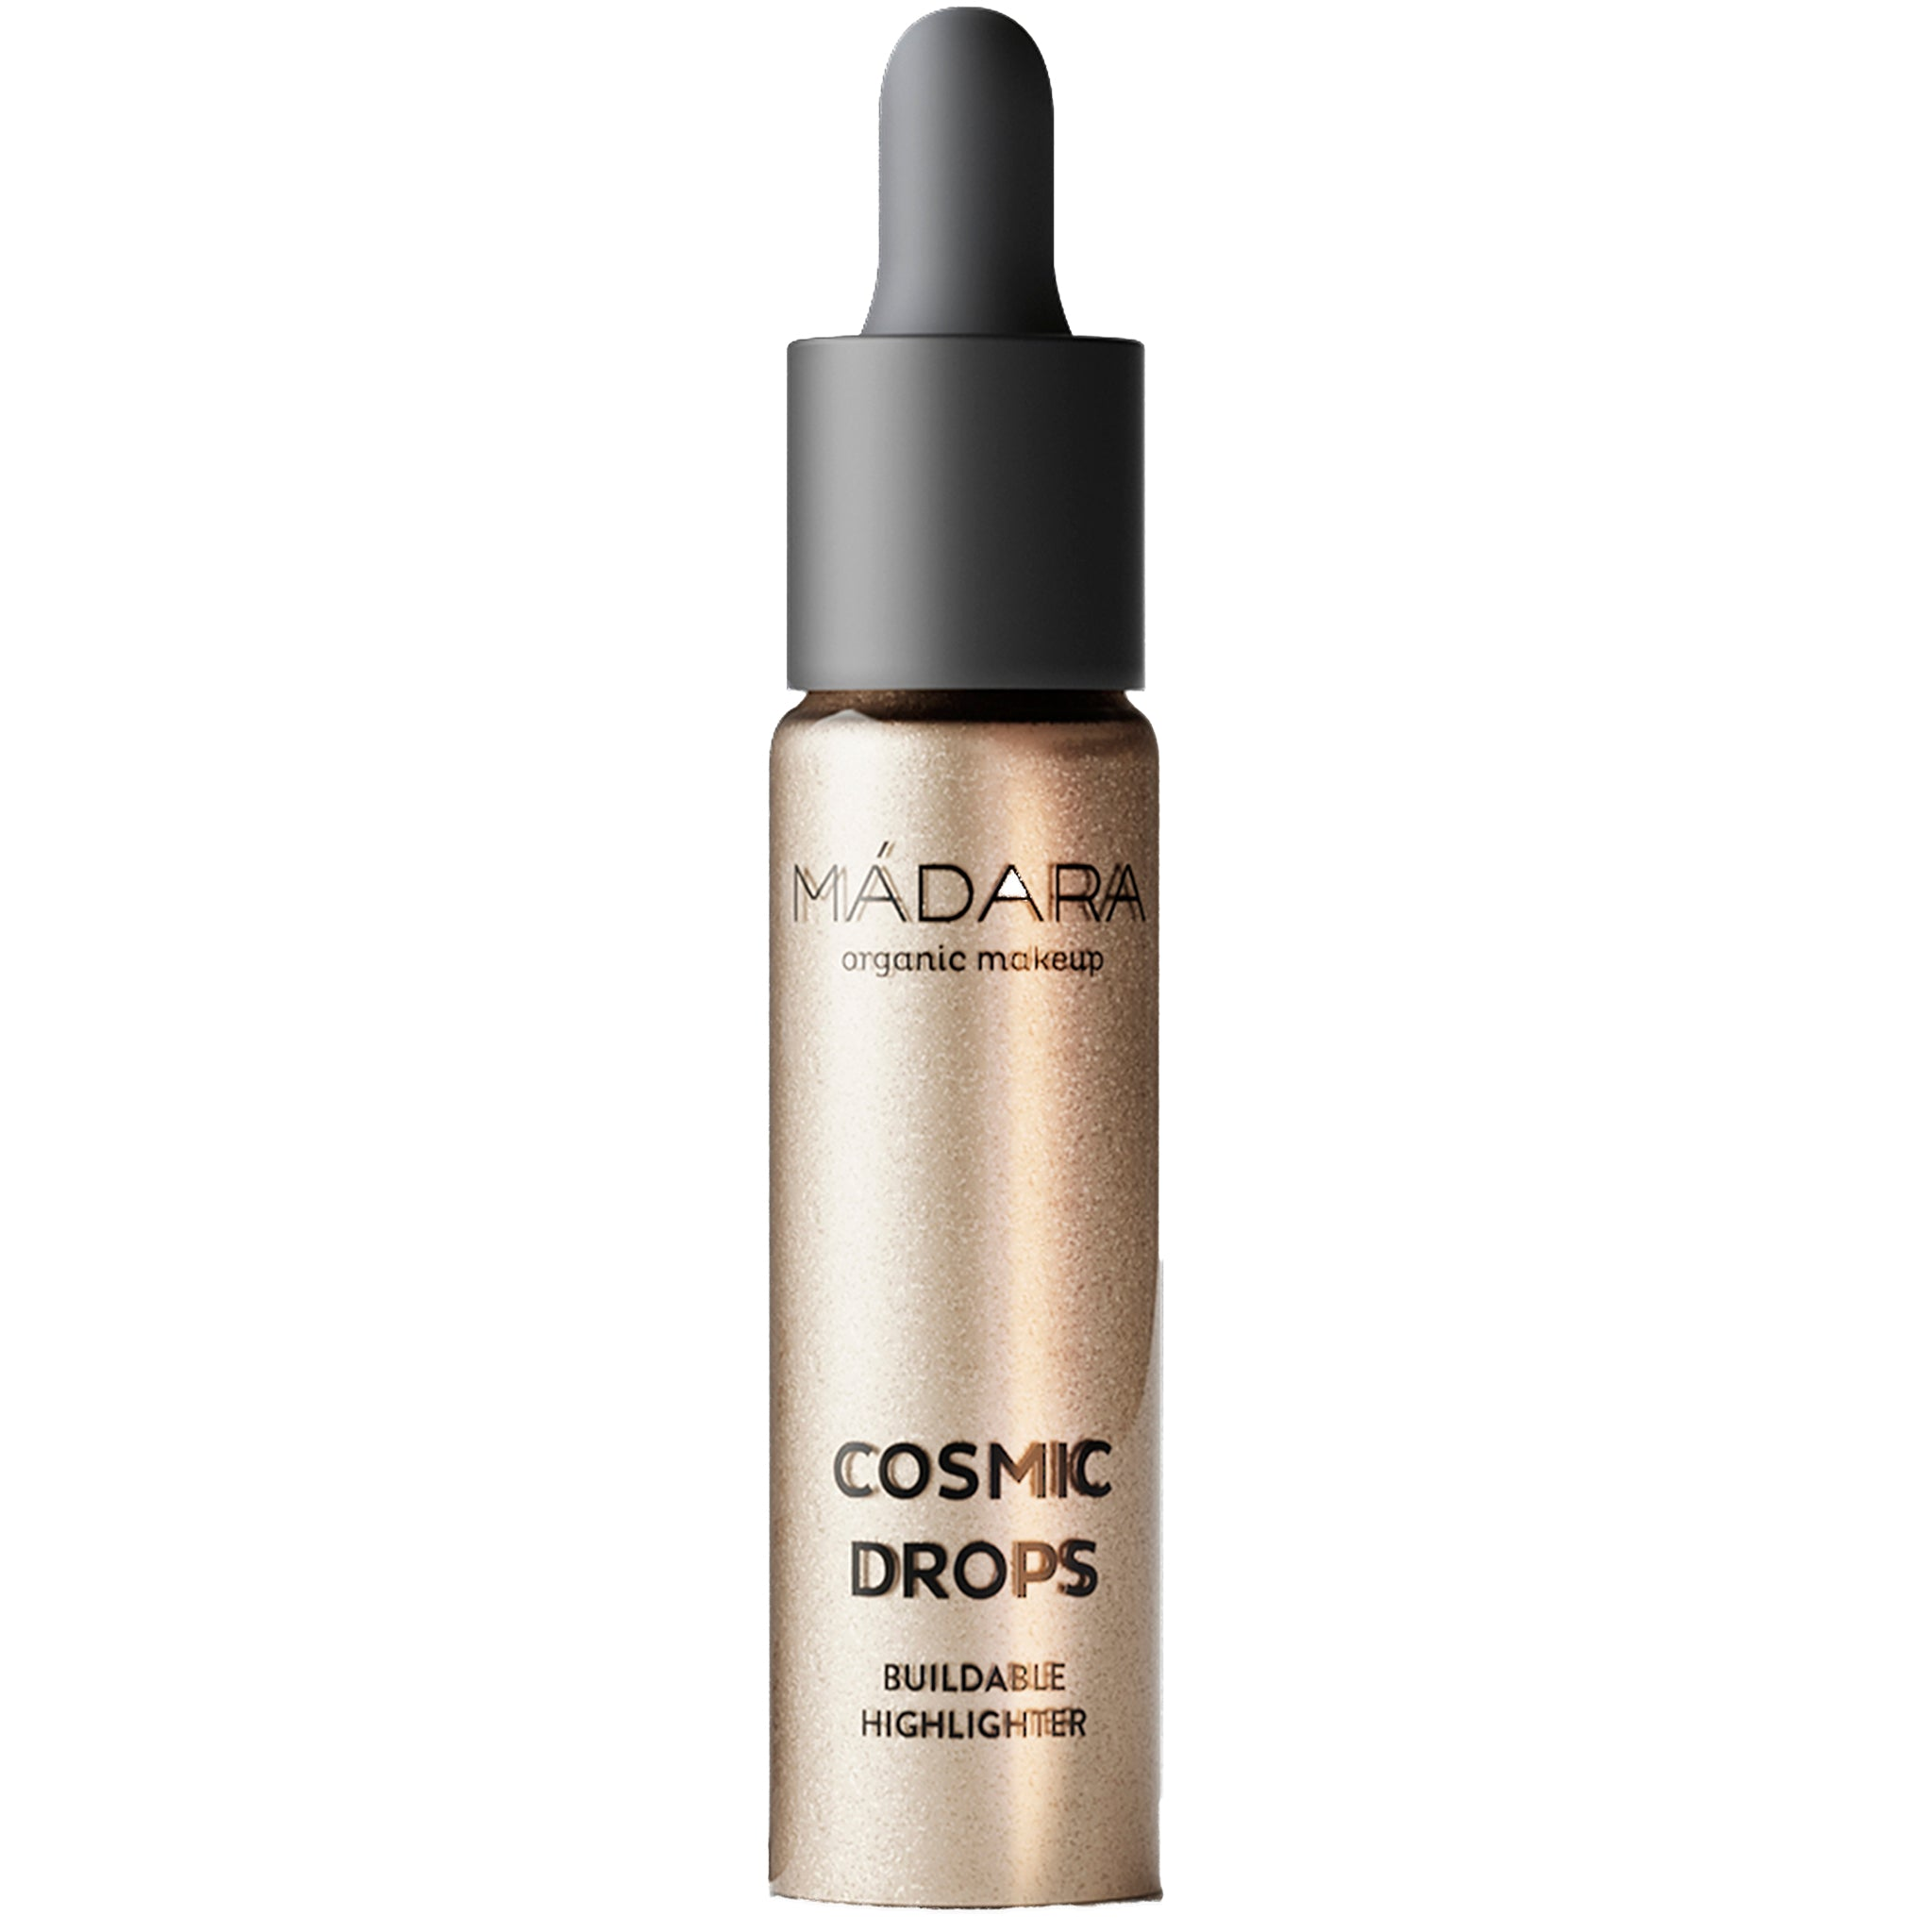 Cosmic Drops - Buildable Highlighter